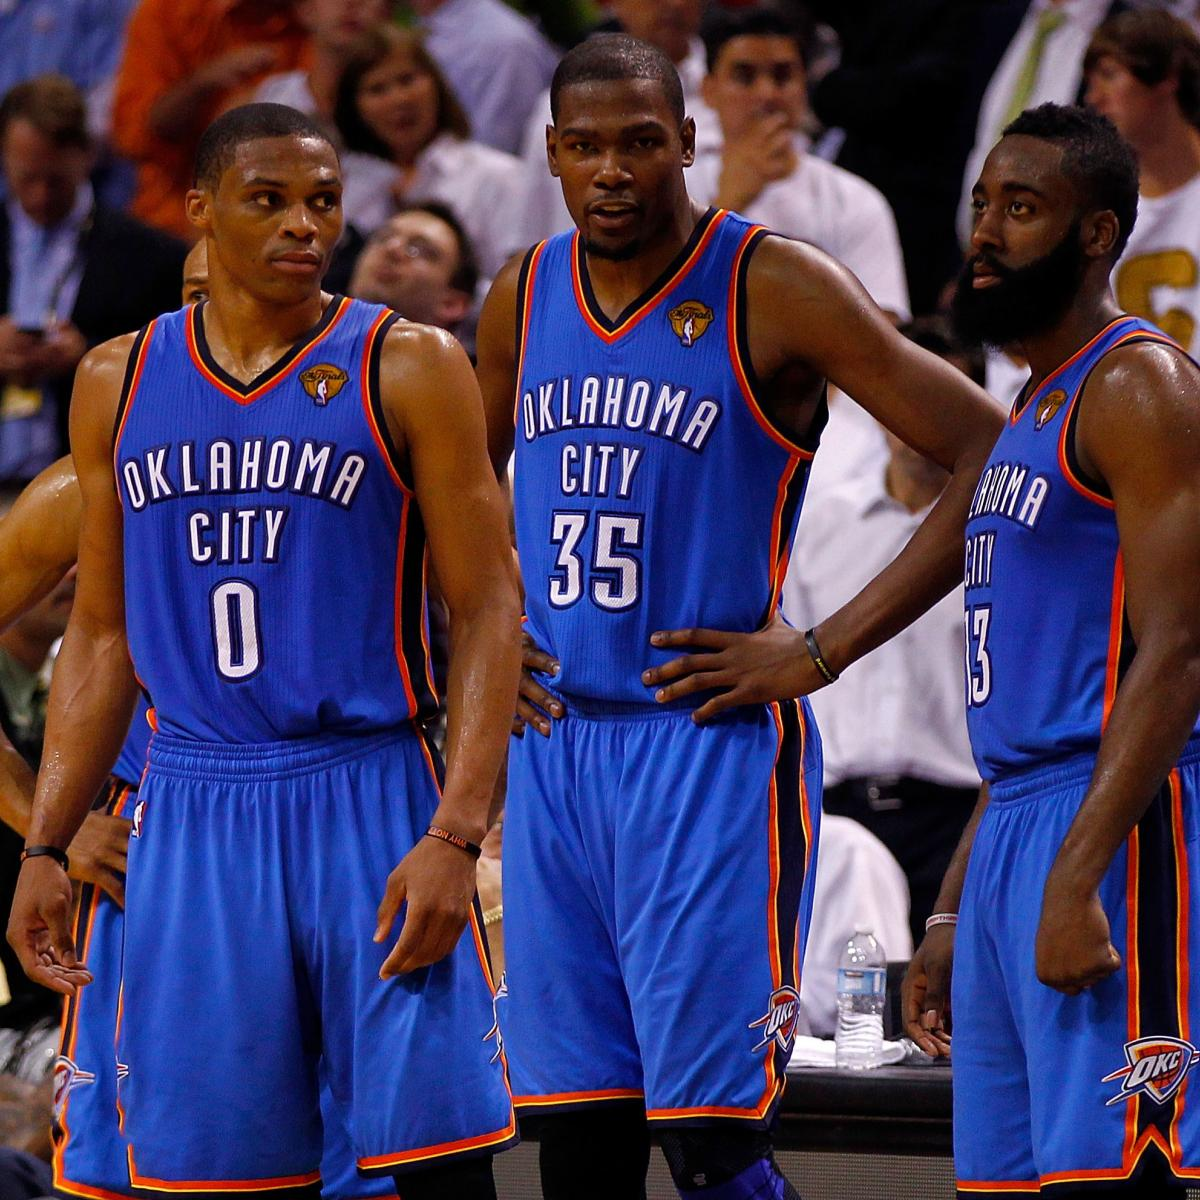 Nba Finals 2012 Is History Repeating Itself For The Oklahoma City Thunder Bleacher